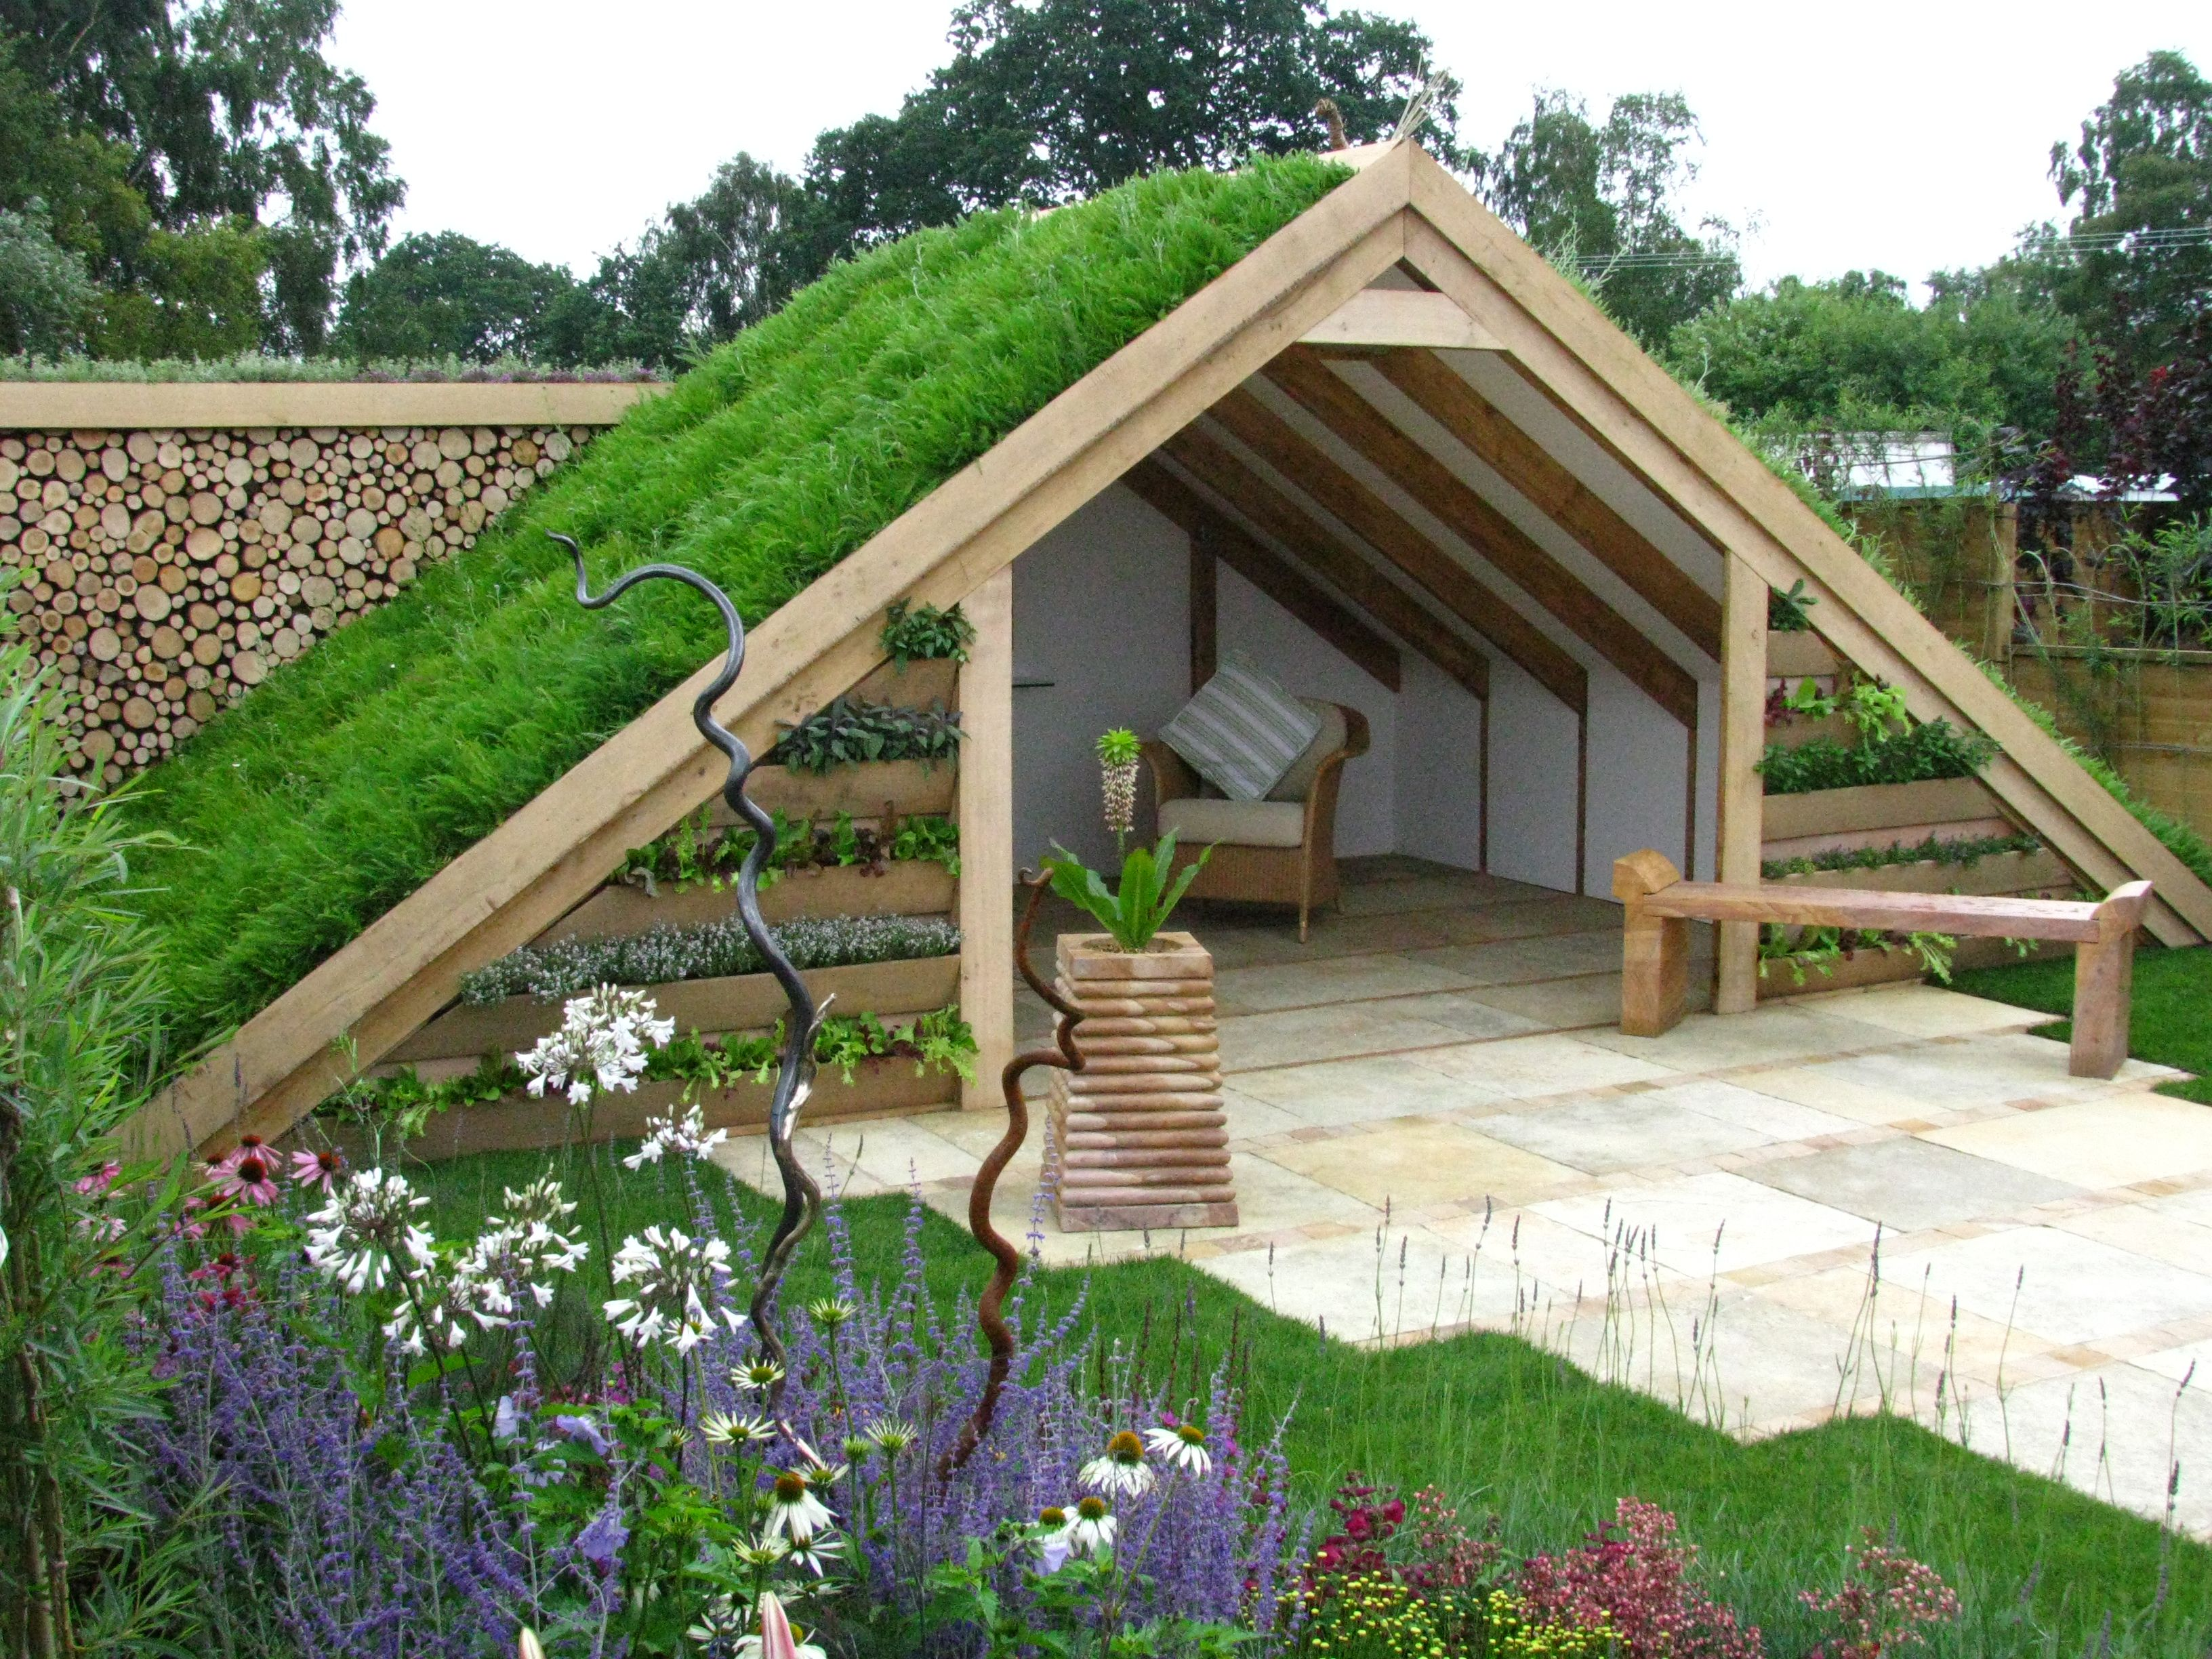 green roof shed at chasewater innovation centre brownhills staffordshire uk photo garden. Black Bedroom Furniture Sets. Home Design Ideas